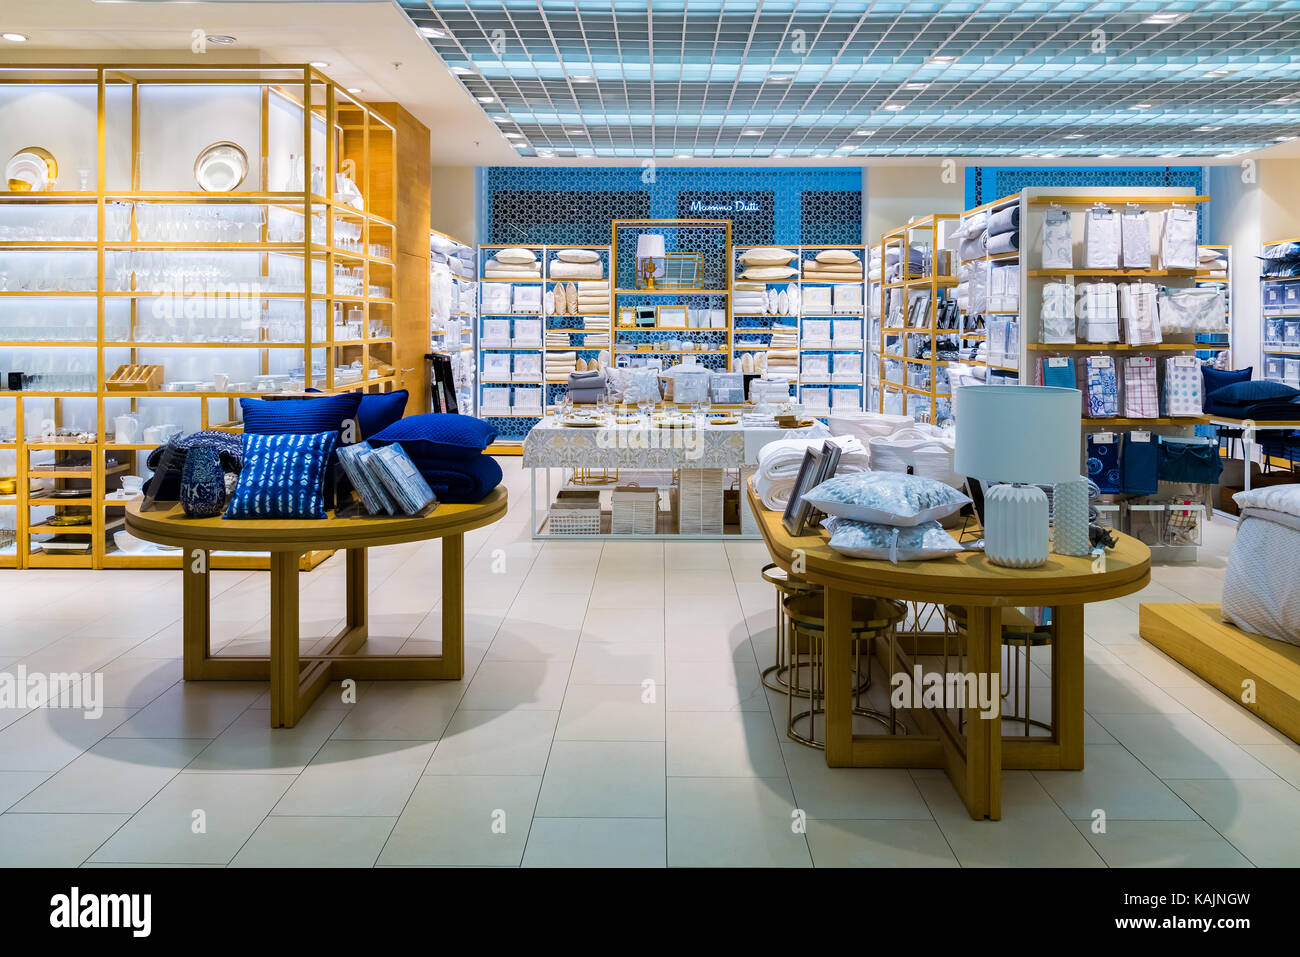 Zara Store Entrance Stock Photos Zara Store Entrance Stock Images Alamy